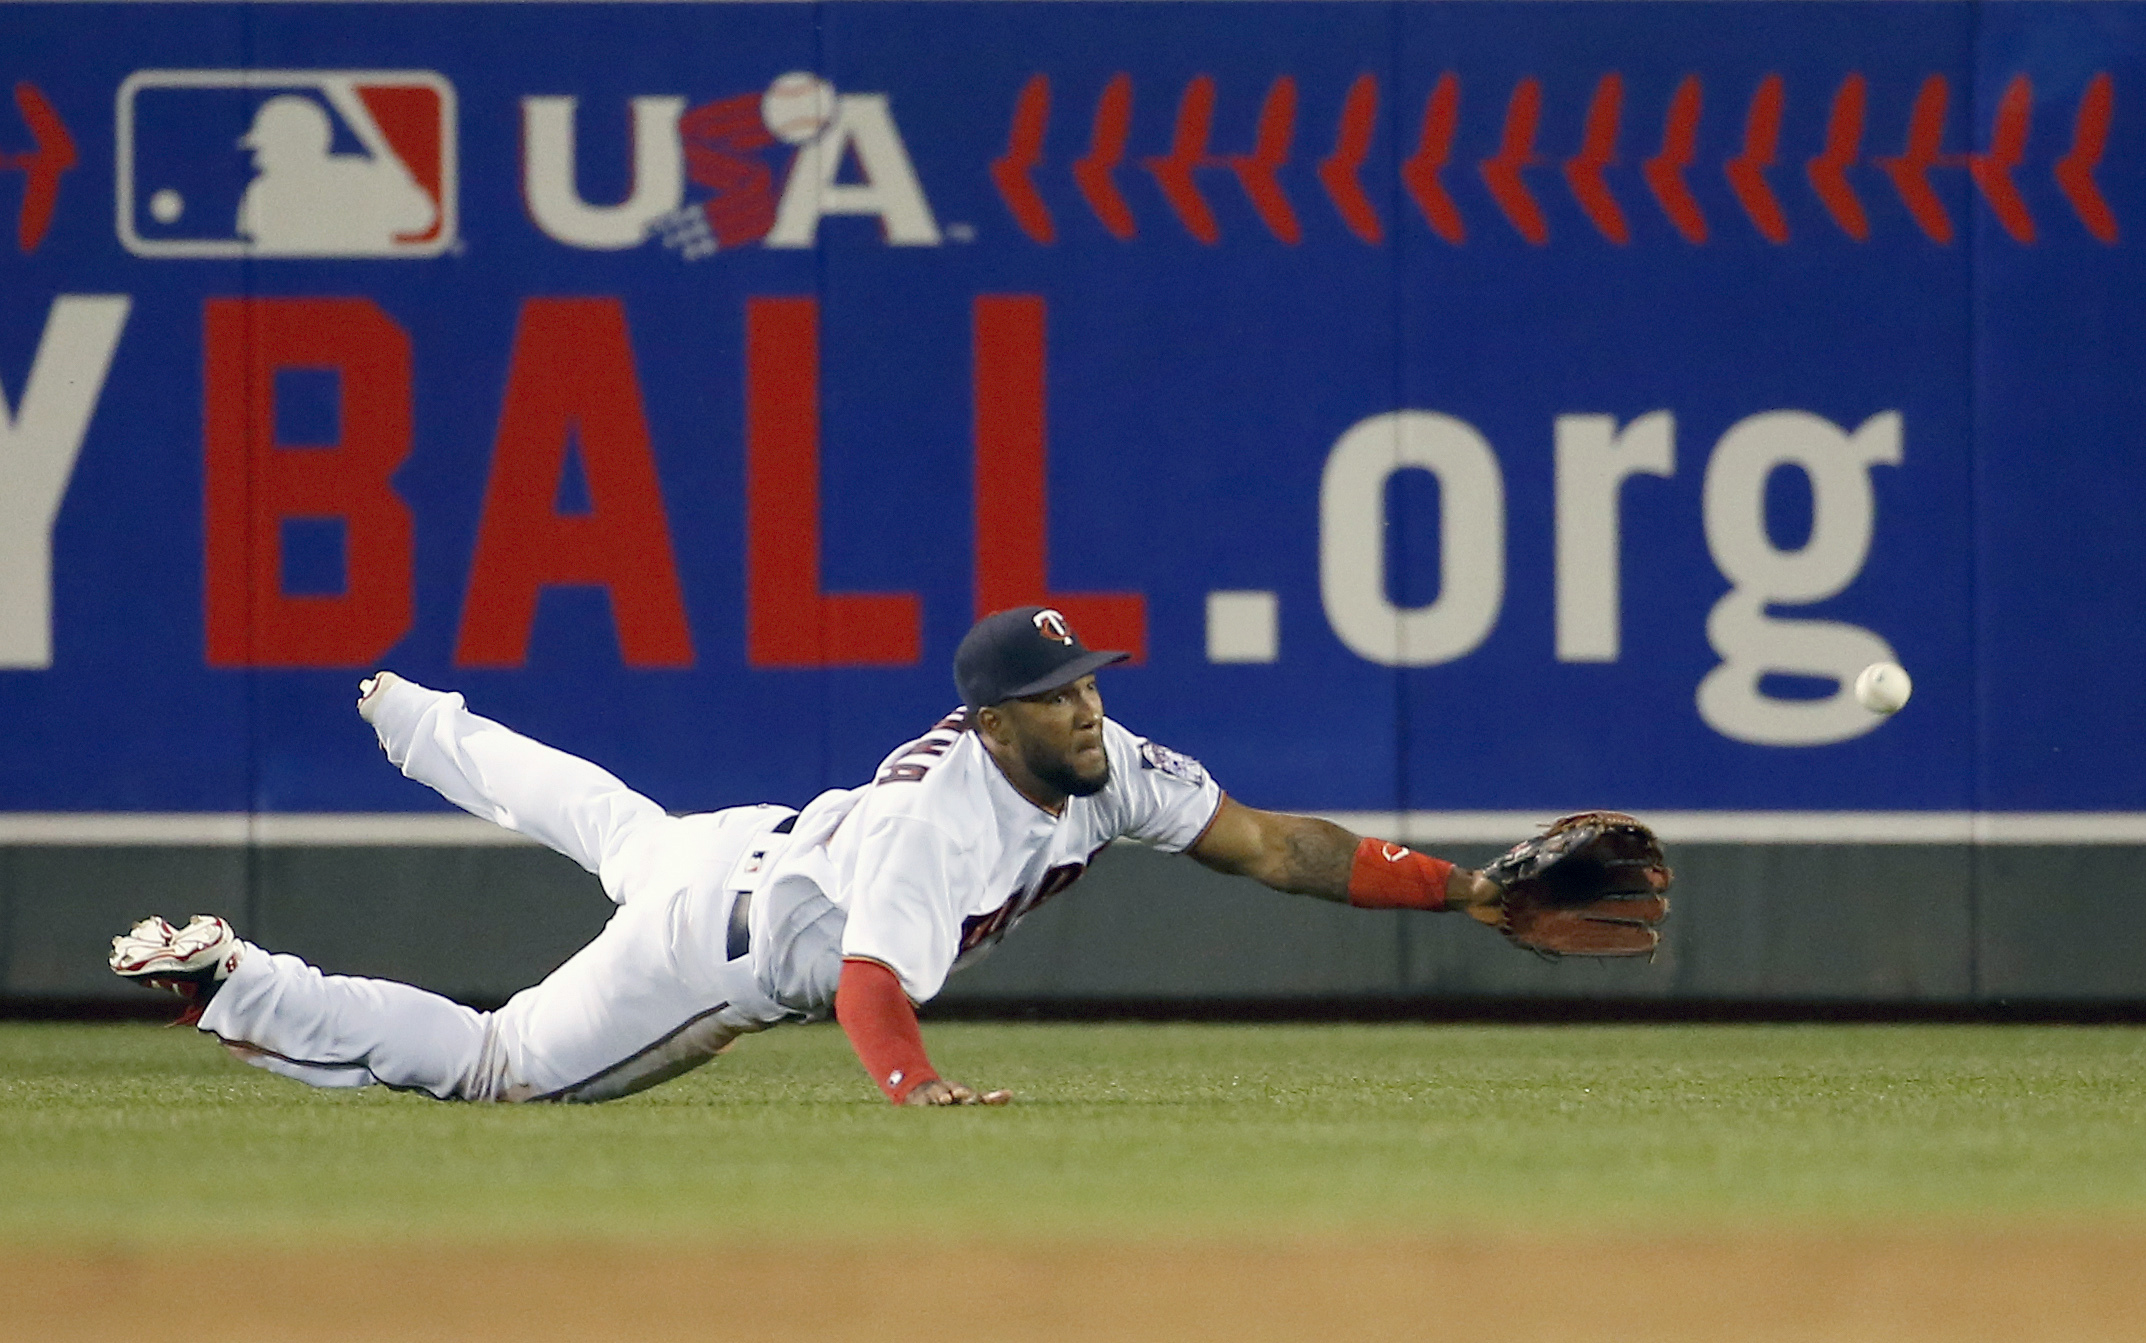 Minnesota Twins Center Fielder Danny Santana Dives To Catch A Fly To Right By Kansas City Royals' Omar Infante During The Fourth Inning Of A Baseball Game In Minneapolis, Monday, May 23, 2016. The Royals Won 10-4. (AP Photo/Ann Heisenfelt)